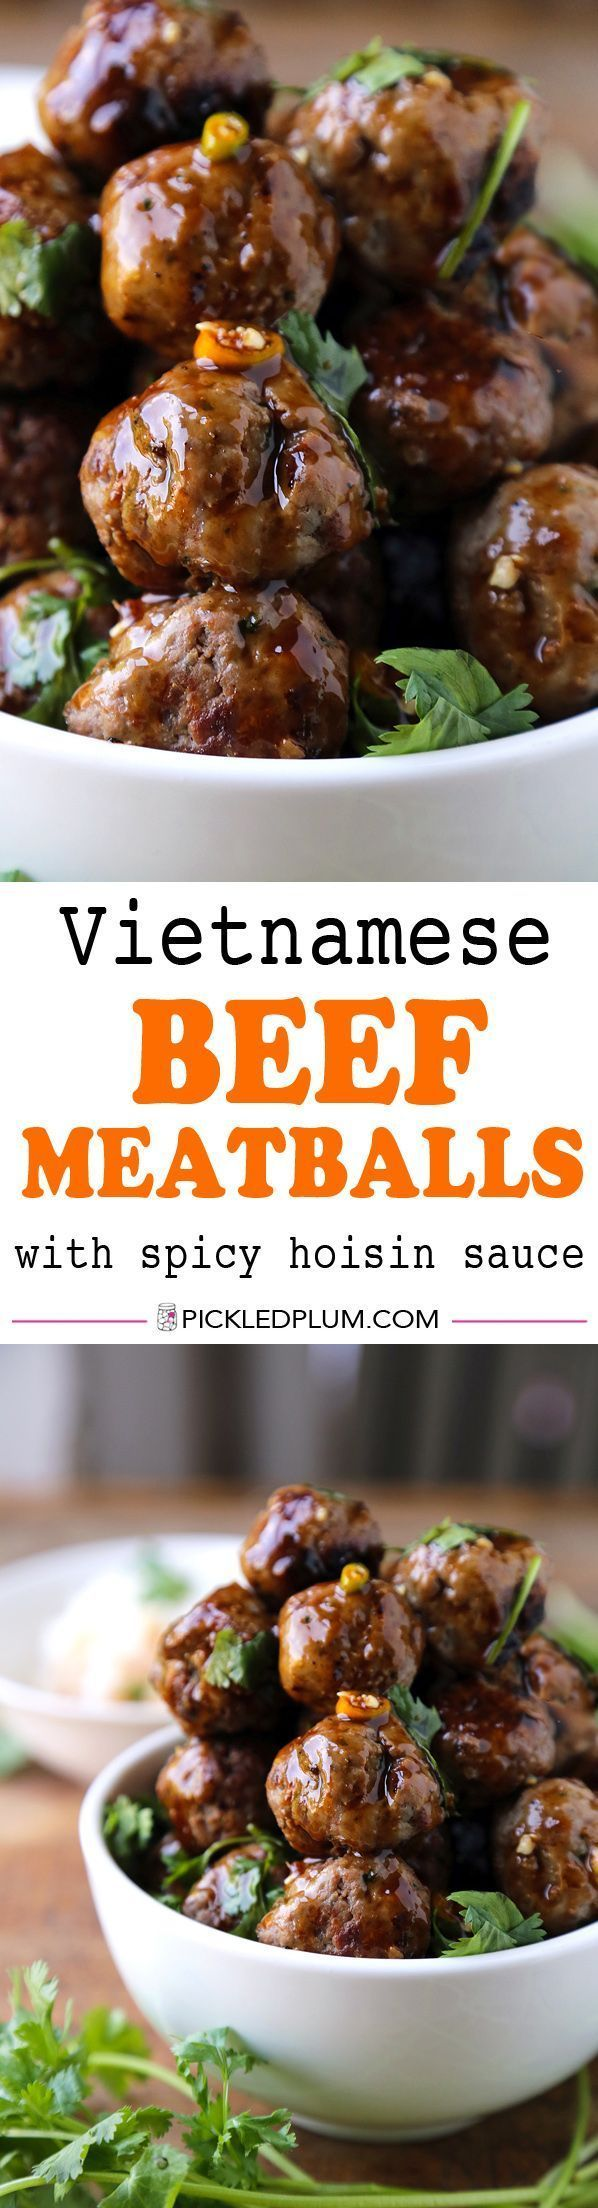 Vietnamese Beef Meatballs With Spicy Hoisin Sauce - SO easy to make! The tastiest, most savory meatballs you've ever tasted! We love these with freshly sliced tomatoes and coriander! | http://pickledplum.com